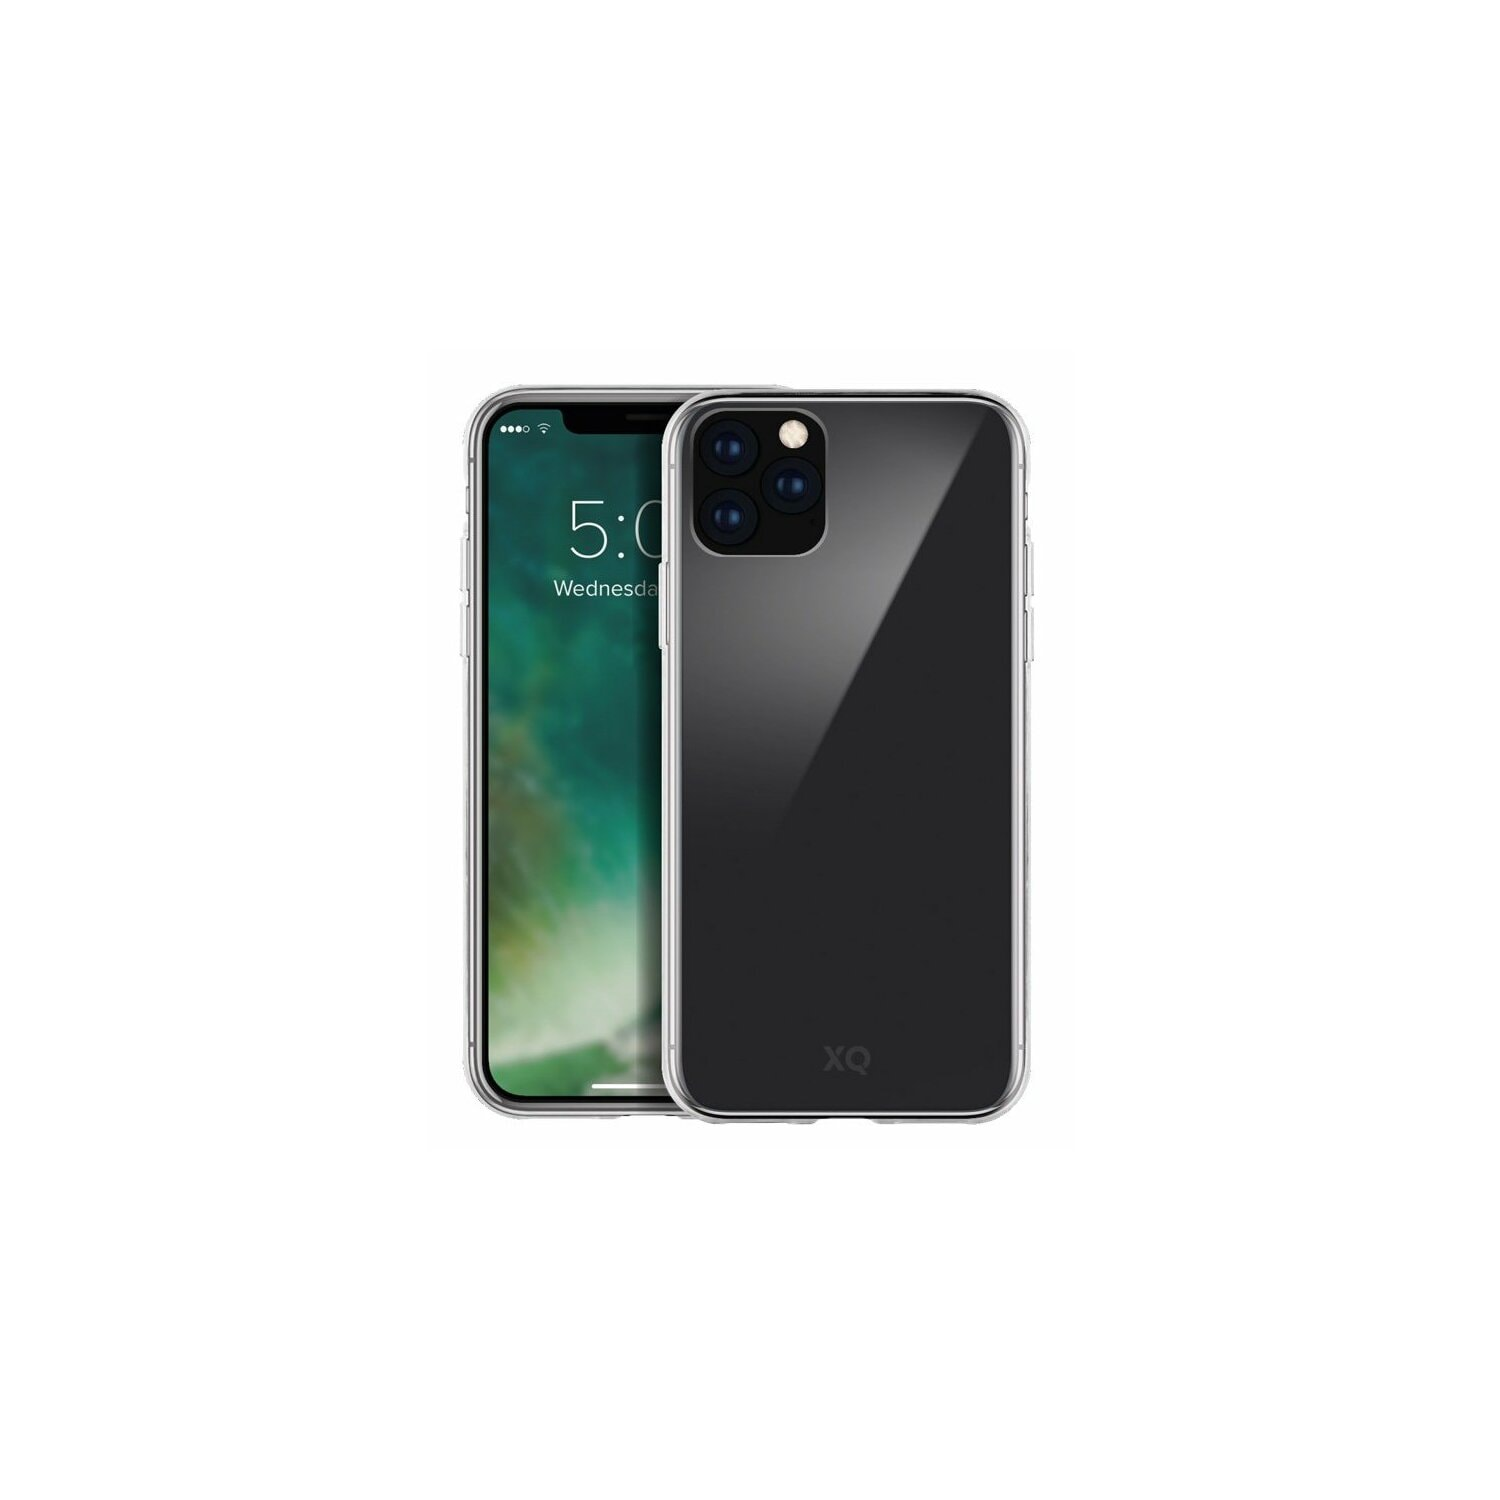 Etui na smartfon XQISIT Phantom do Apple iPhone 11 Pro Max Przezroczysty 36720